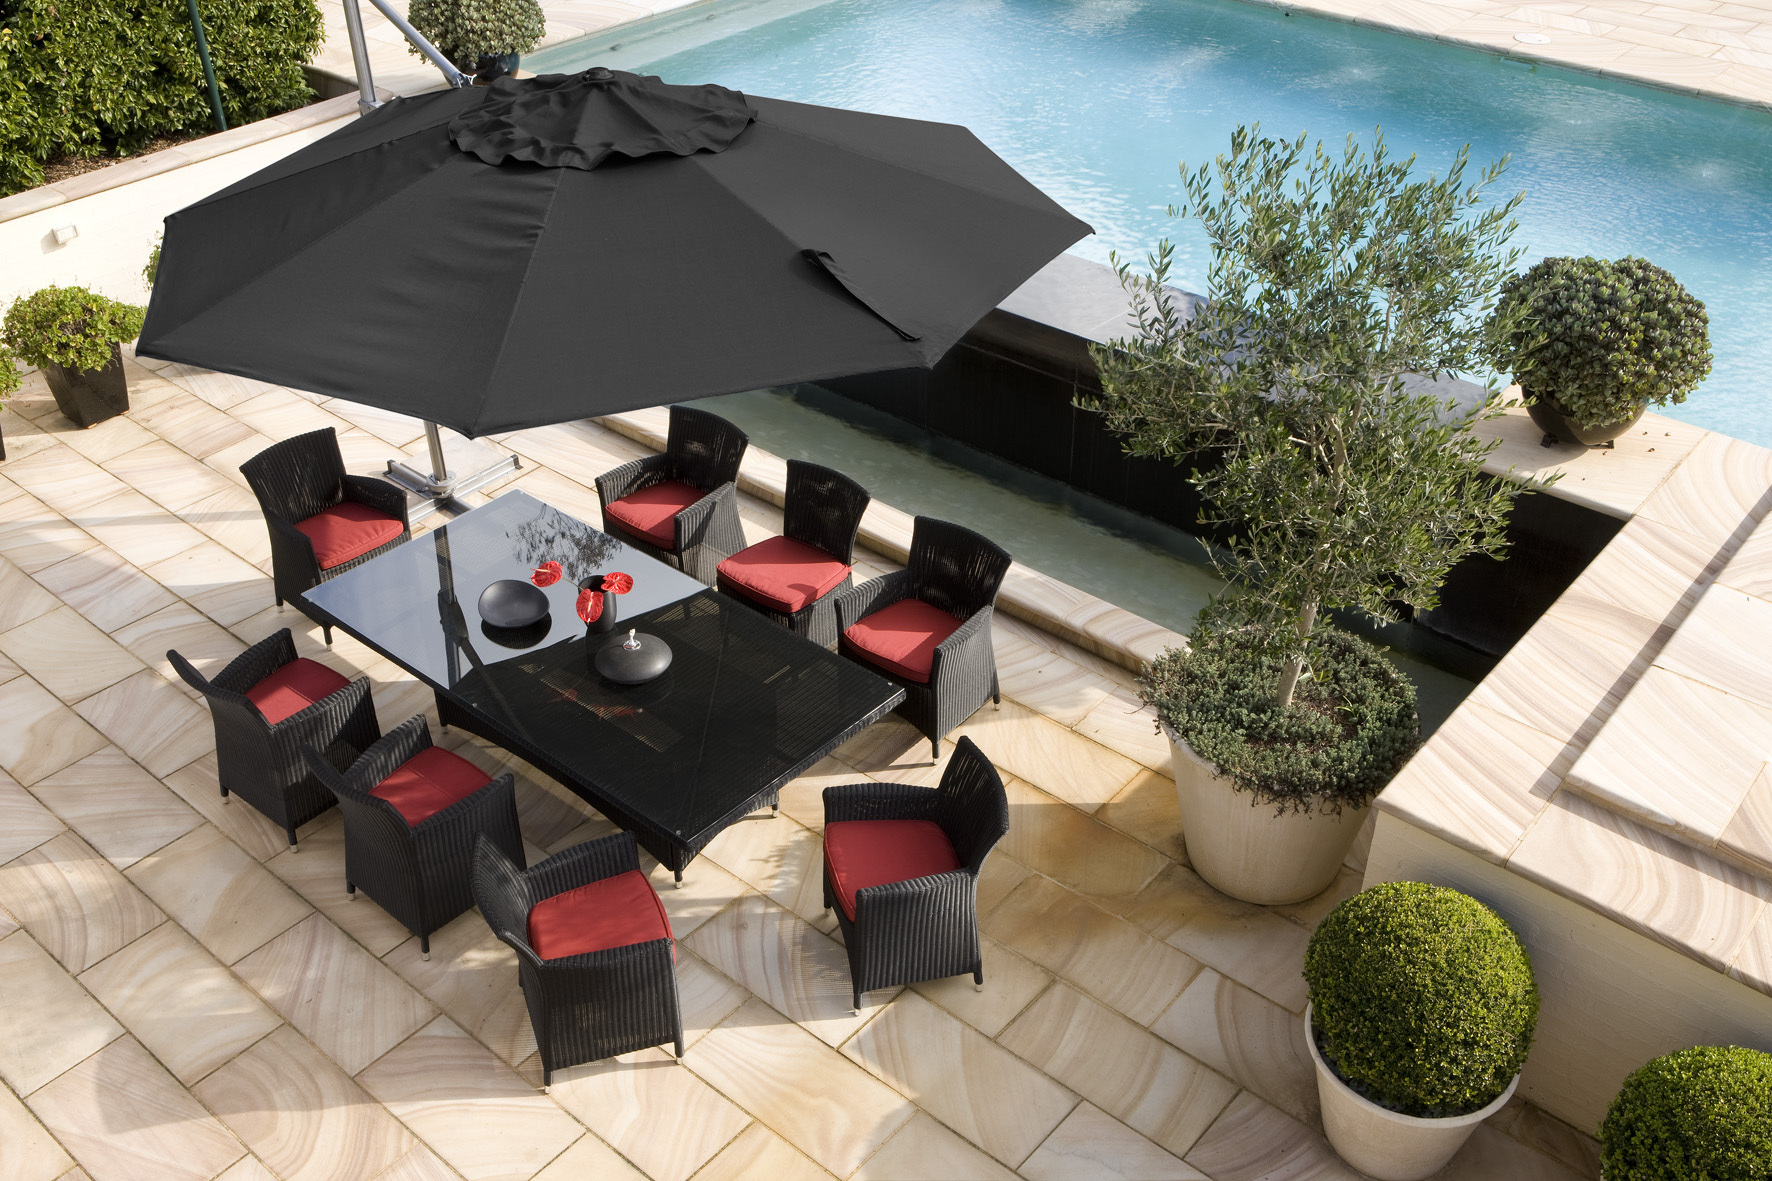 Brown pave with umbrella.jpg